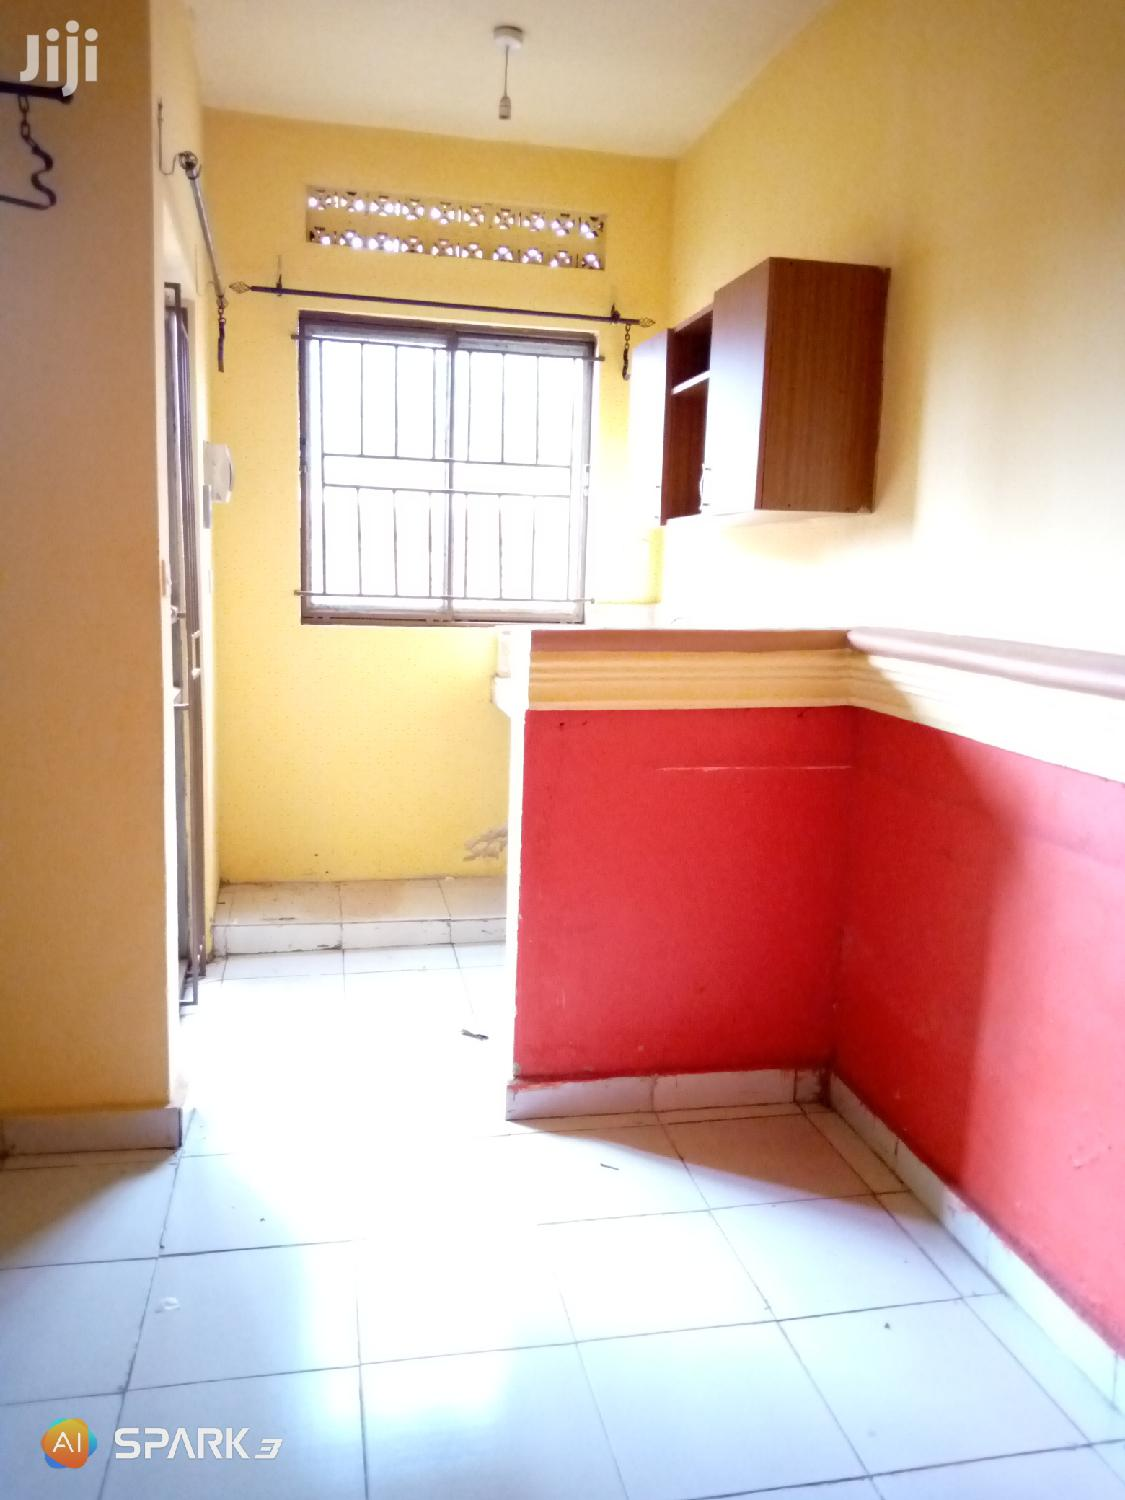 Single Bedroom for Rent in Ntinda | Houses & Apartments For Rent for sale in Kampala, Central Region, Uganda